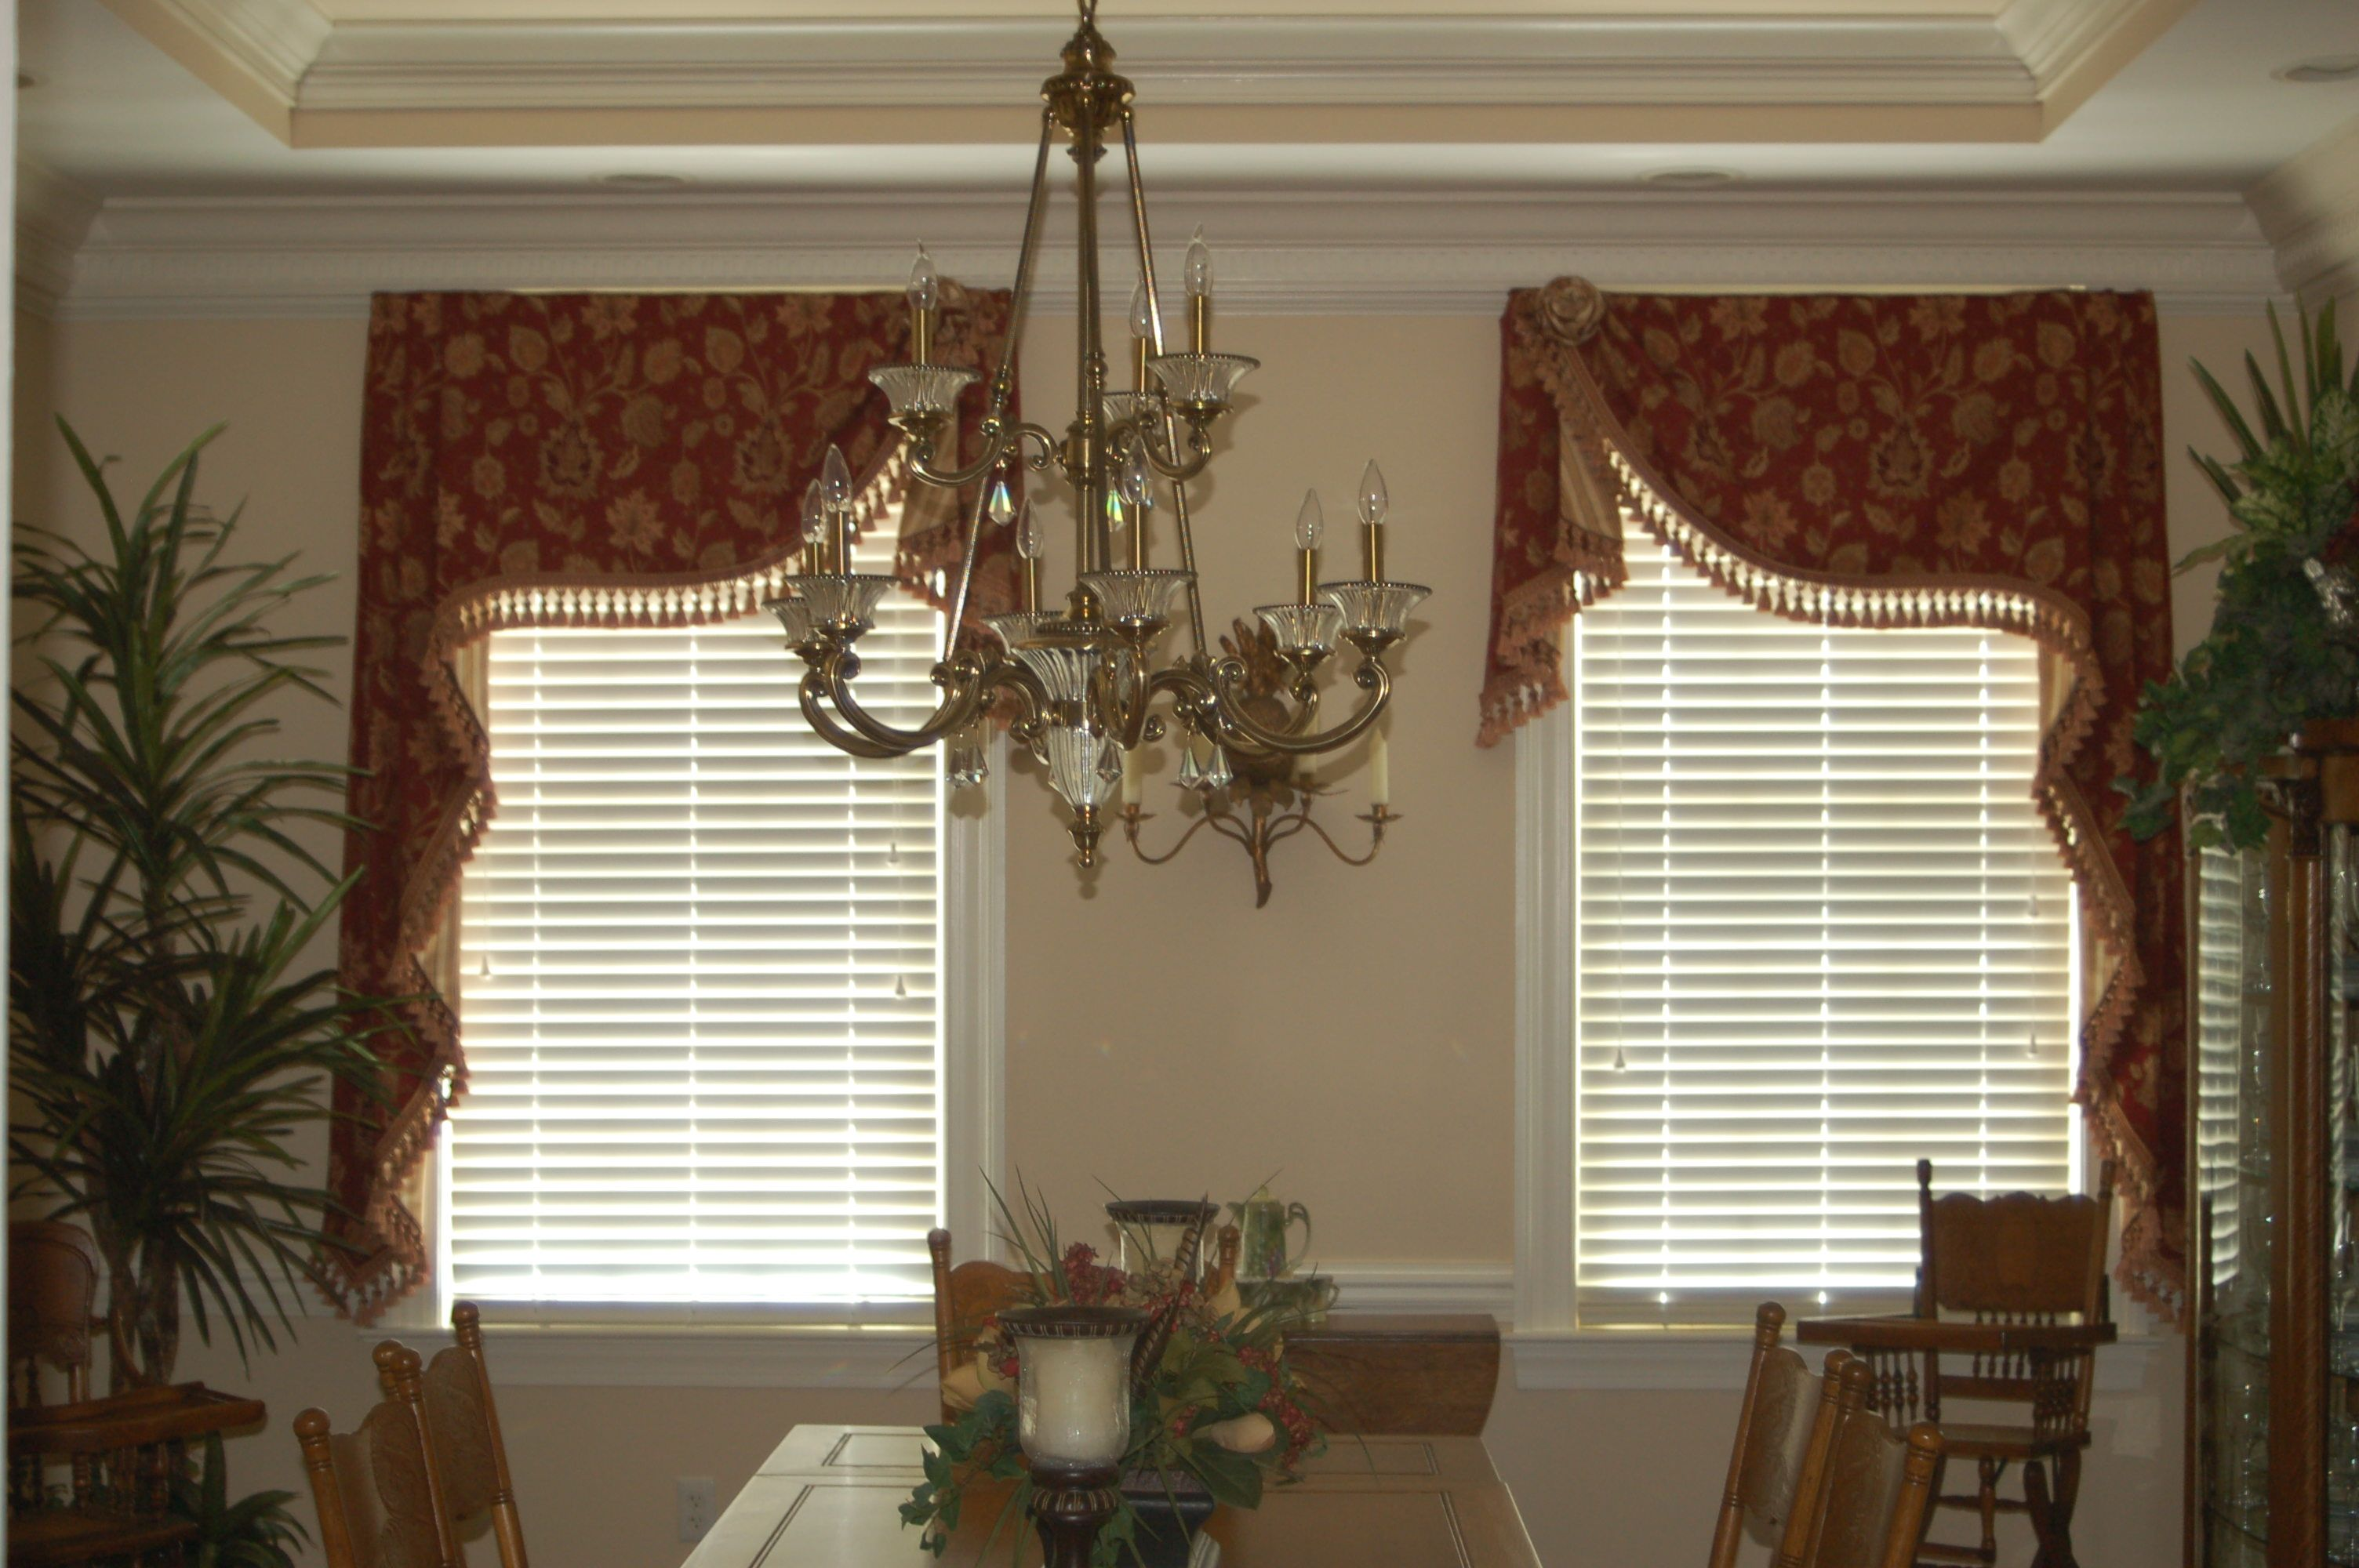 Mirrored Moreland Valances With Extended Jabots Custom Designed By